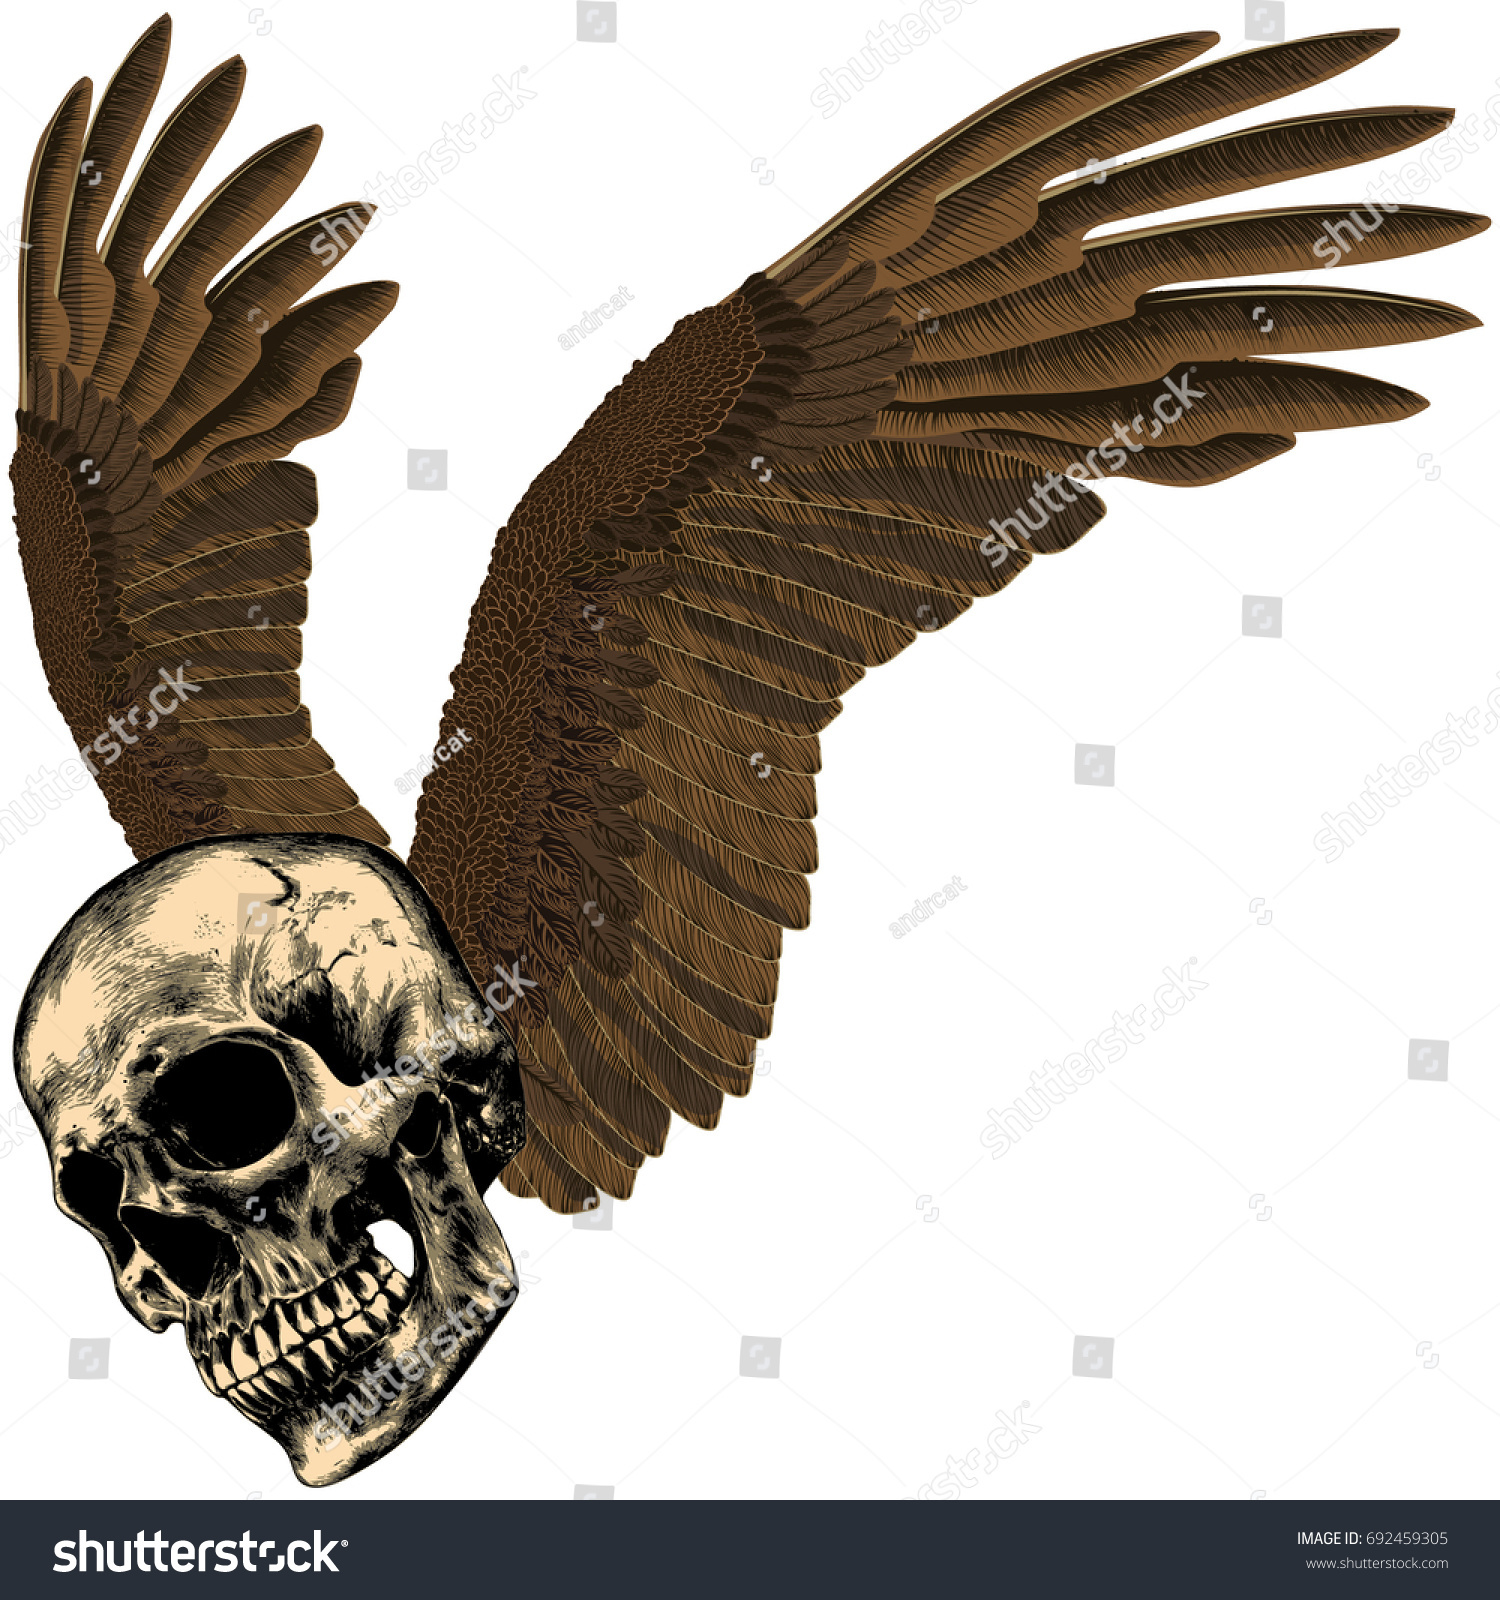 Human Skull Eagles Wings On Empty Stock Vector Royalty Free Eagle Wing Diagram Of Bald With An Background